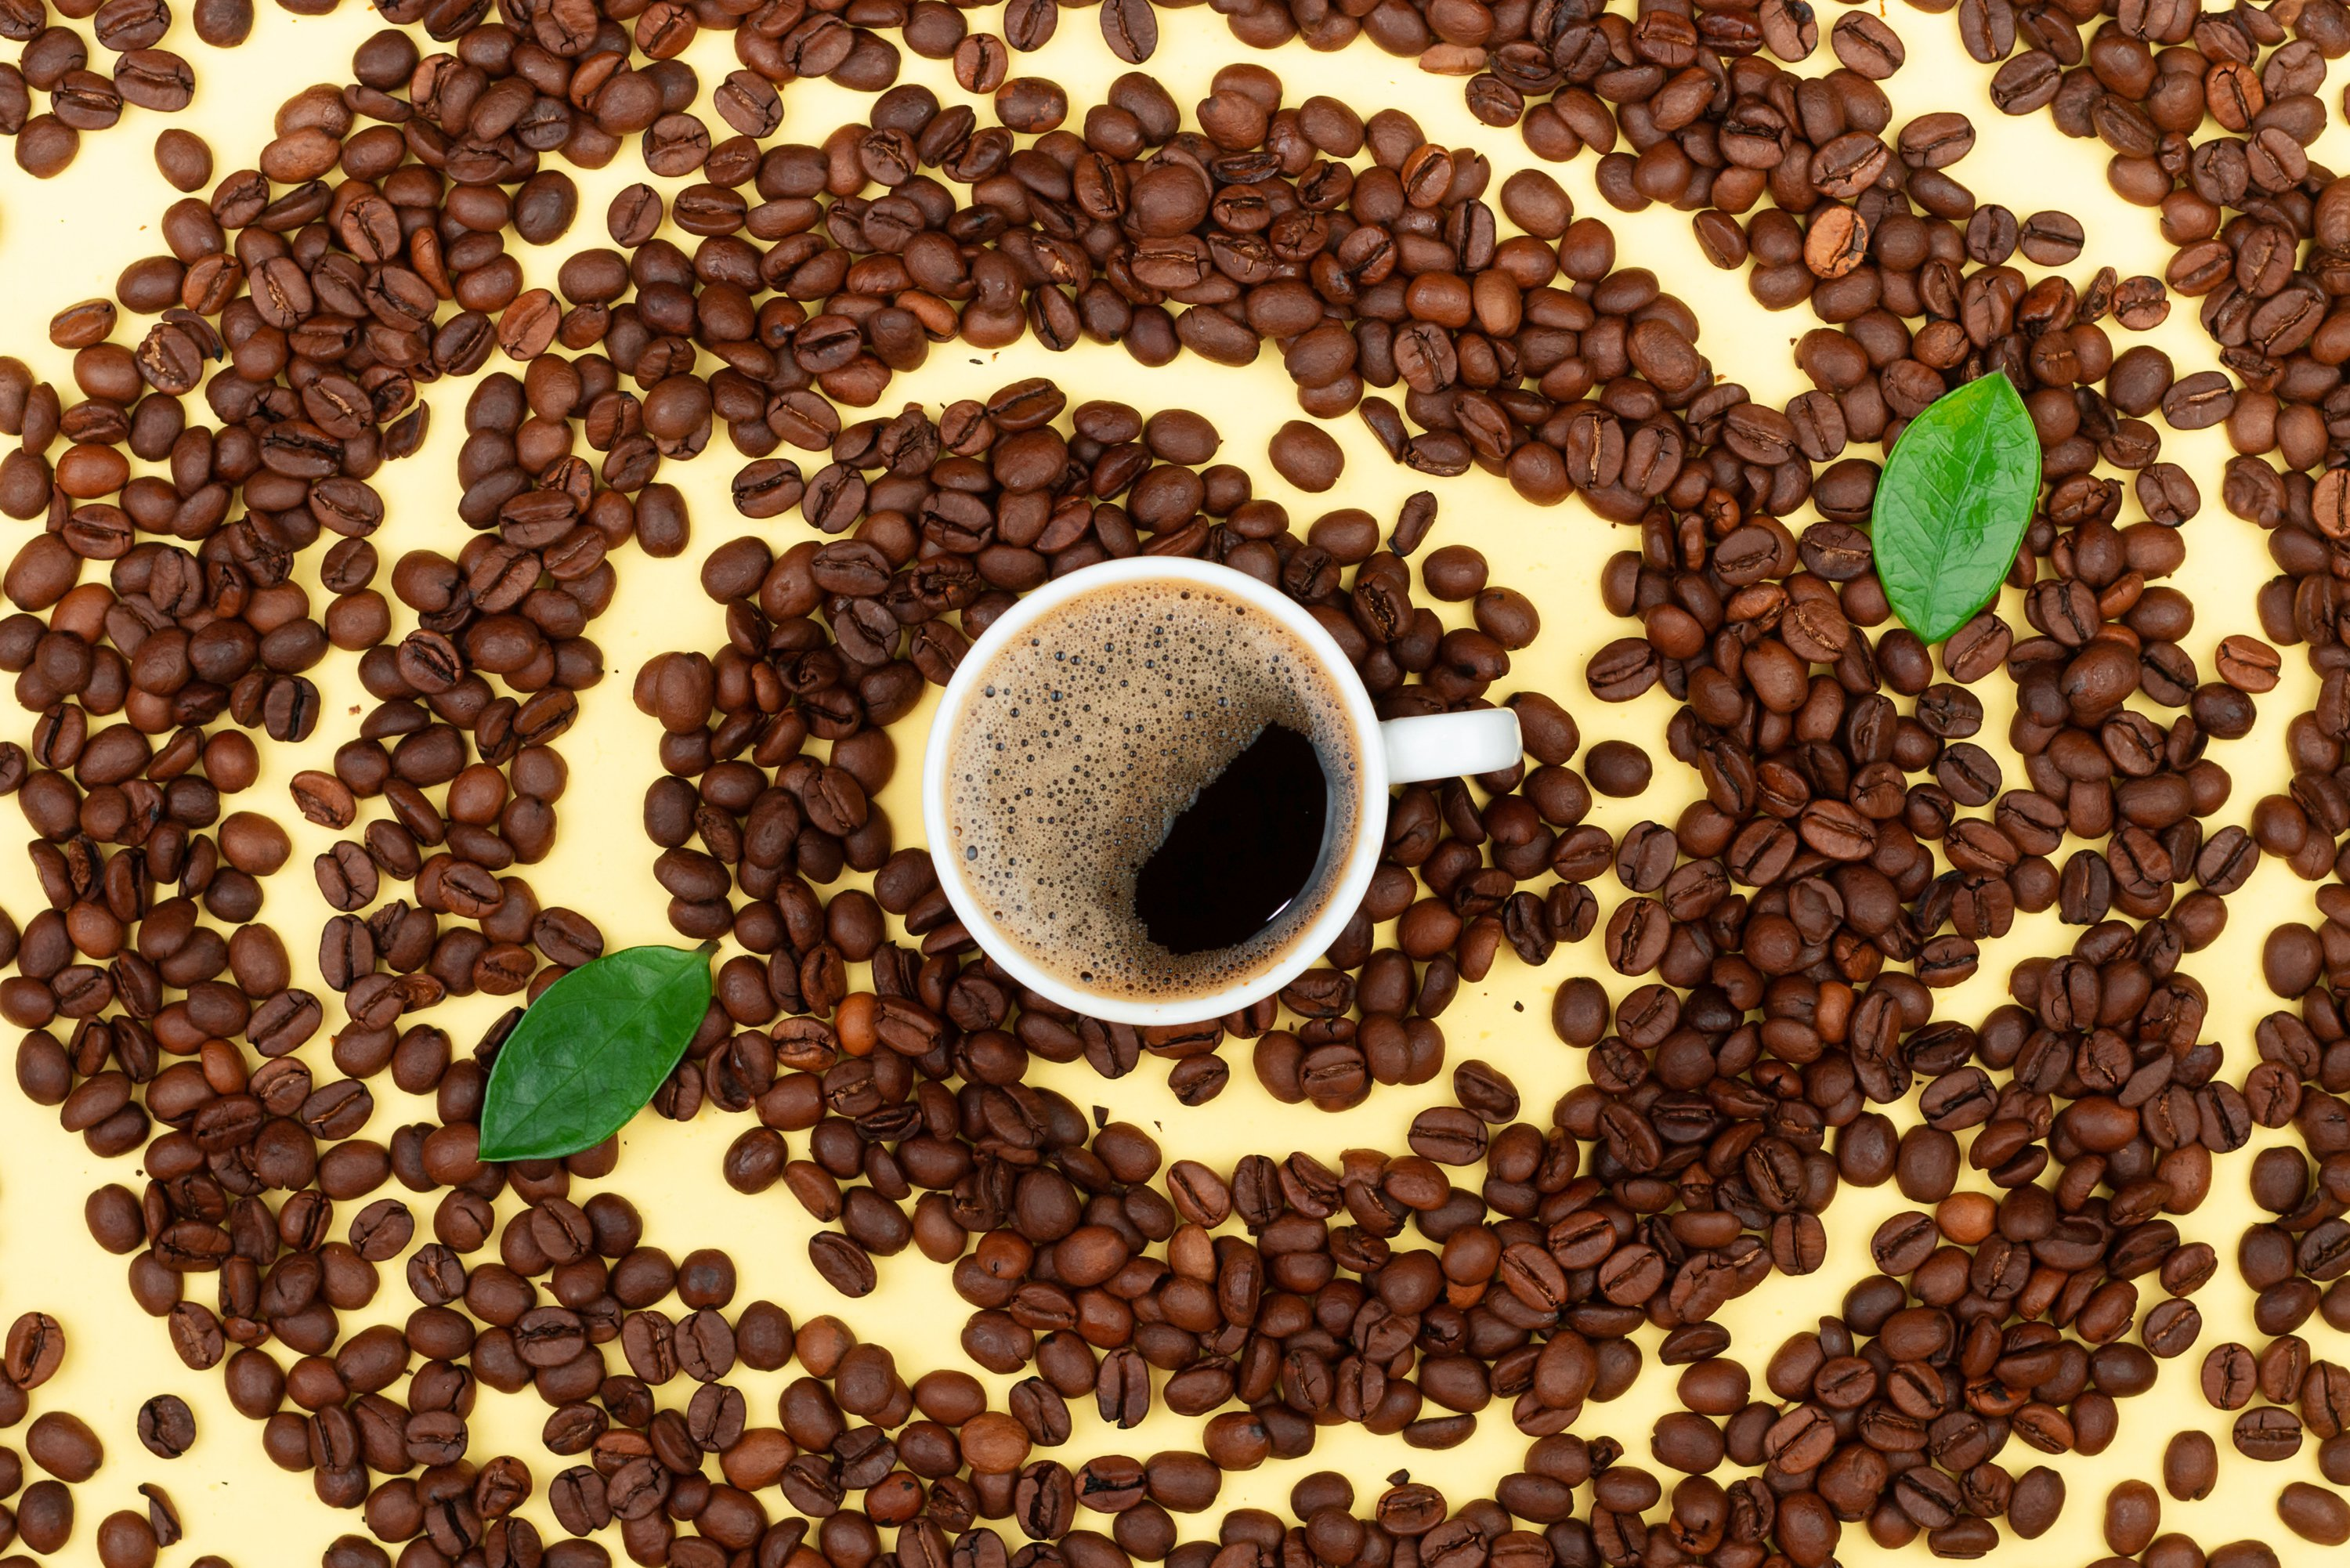 Fresh coffee and coffee beans on the table example image 1